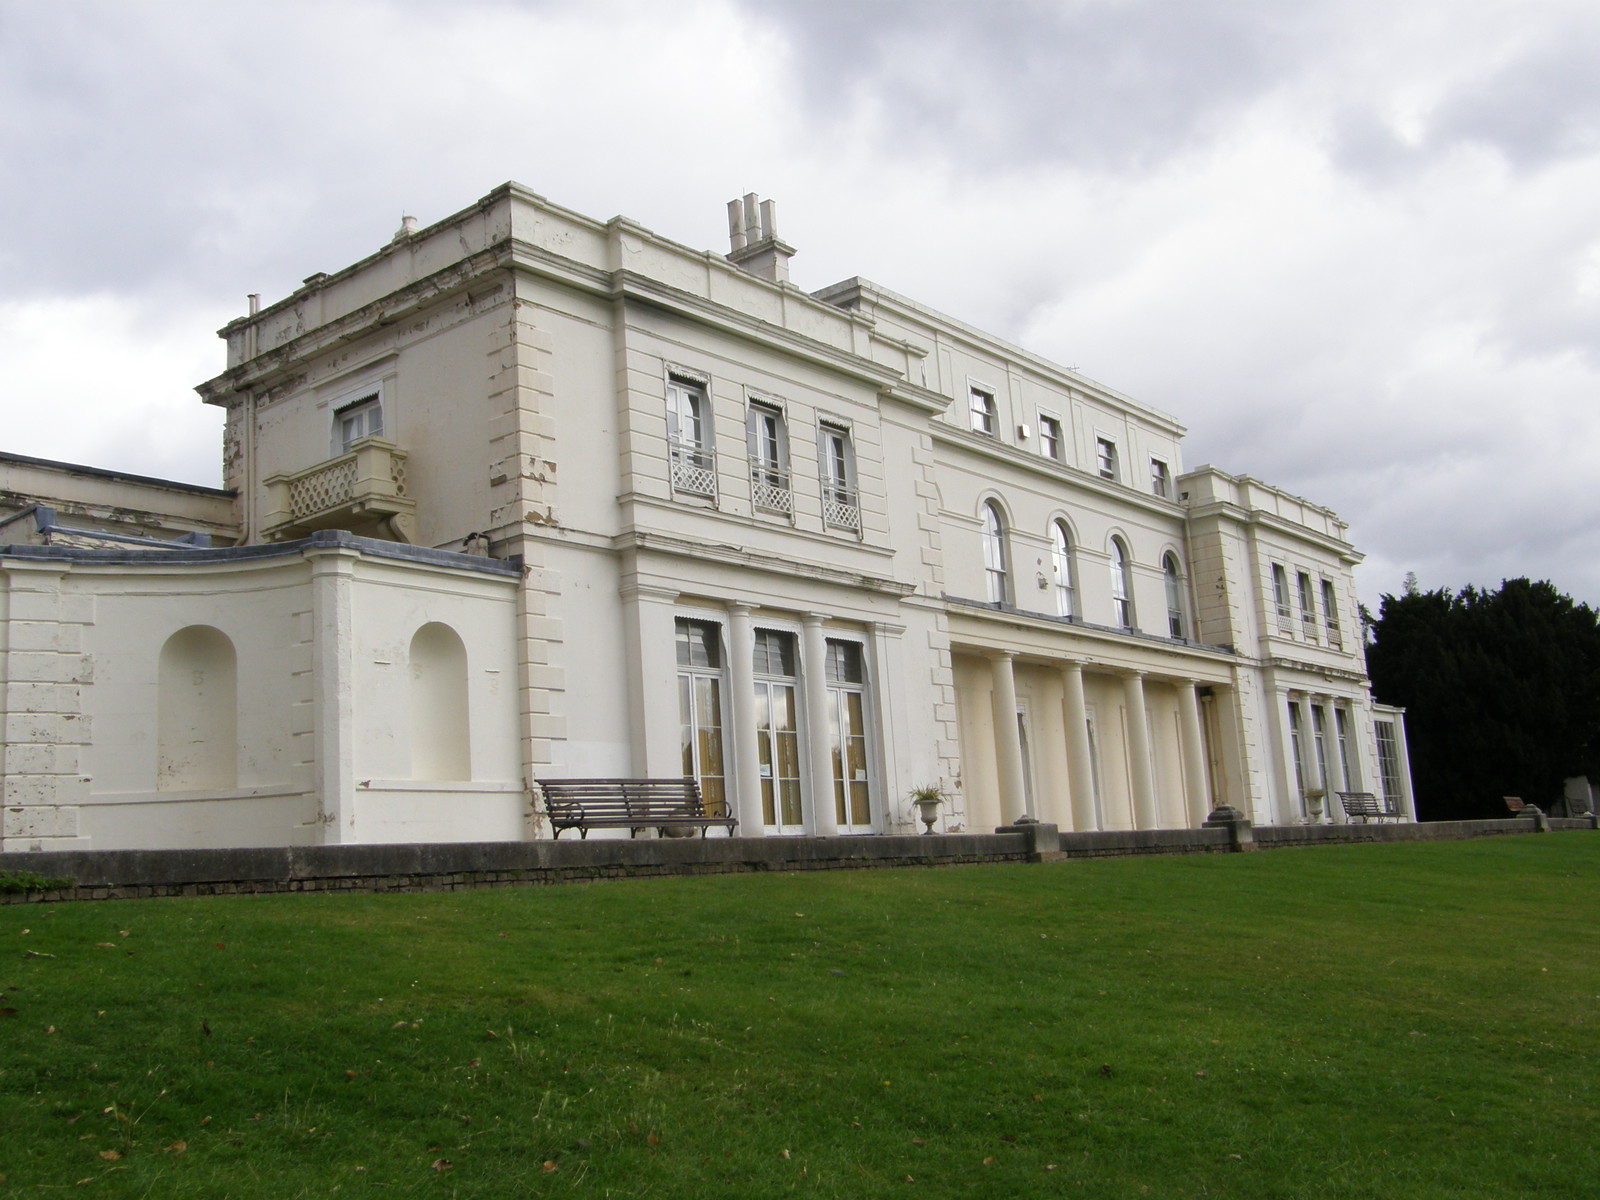 The Large Mansion in Gunnersbury Park